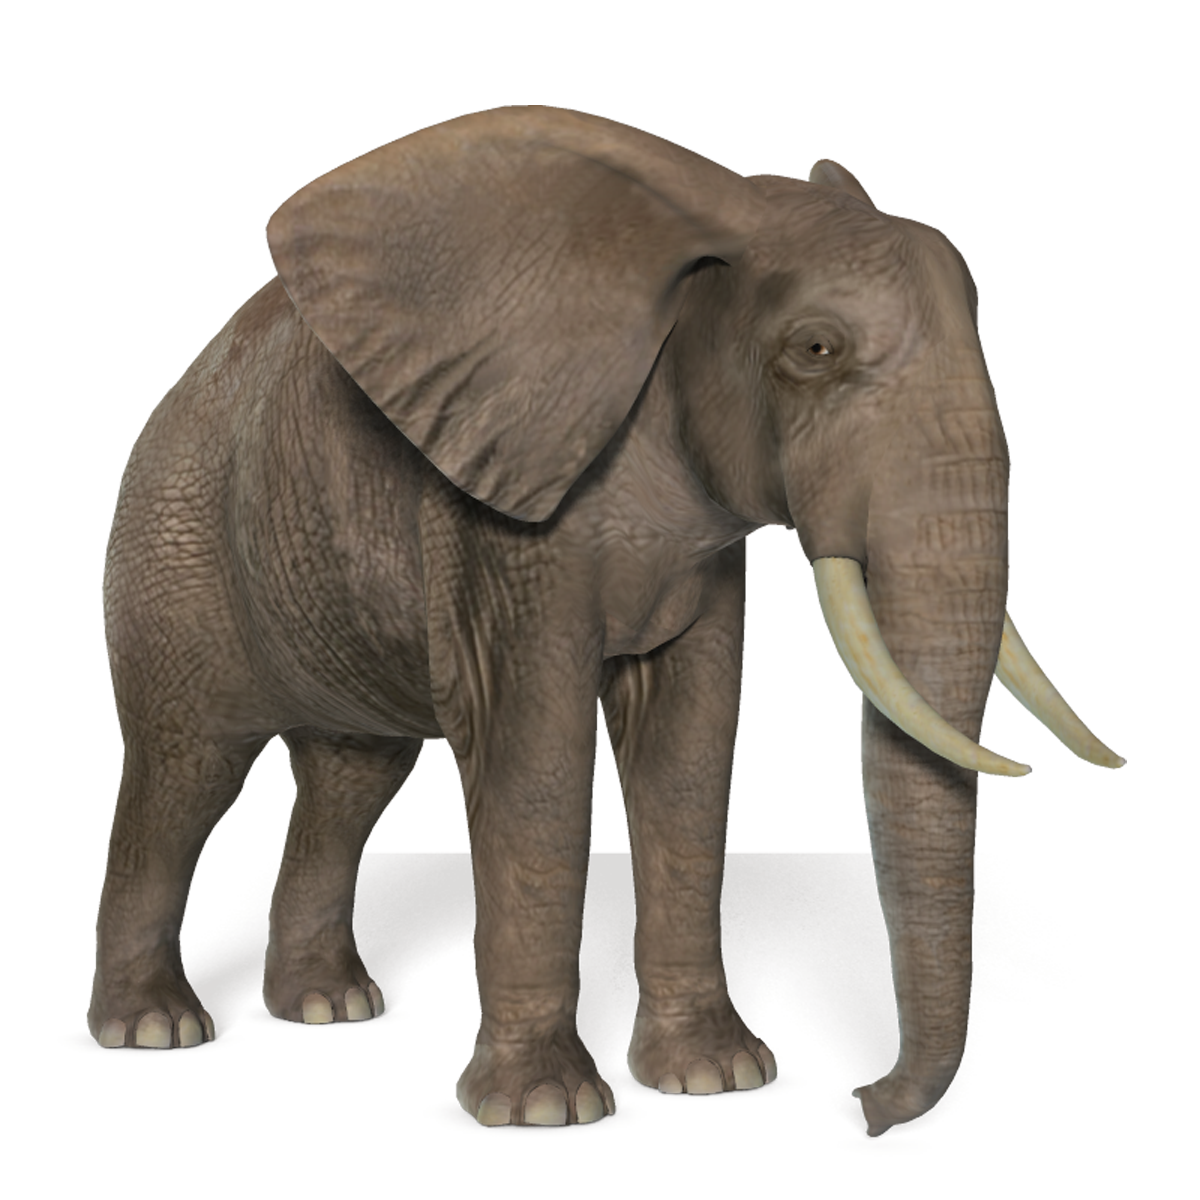 Elephant Png Resolution 1200x1200 Transparent Png Image Imgspng Over 411 elephant png images are found on vippng. imgspng